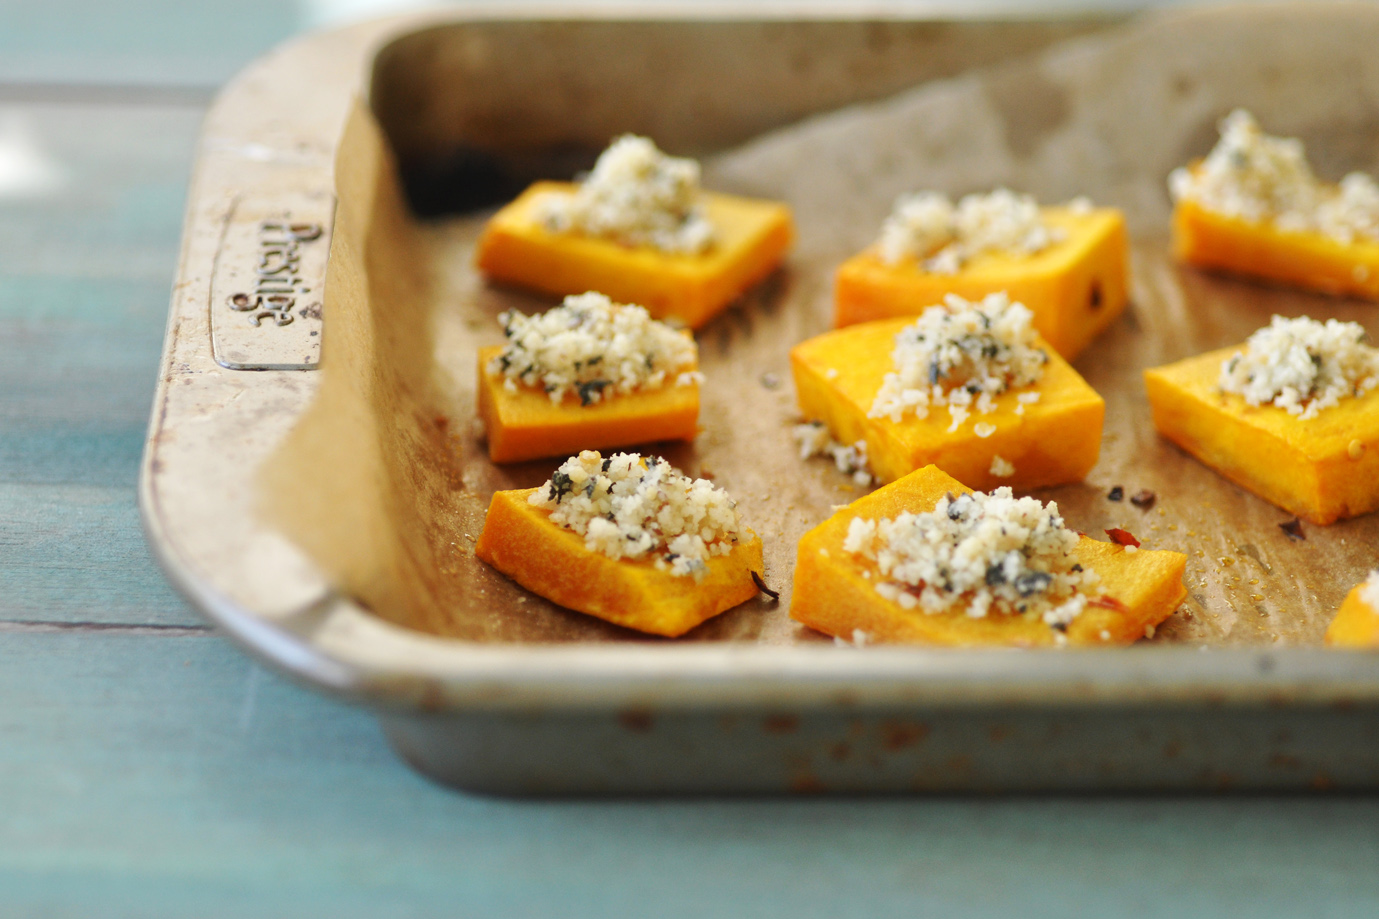 Anja's Food 4 Thought: Roasted Butternut Squash with Nut Sage Parmesan